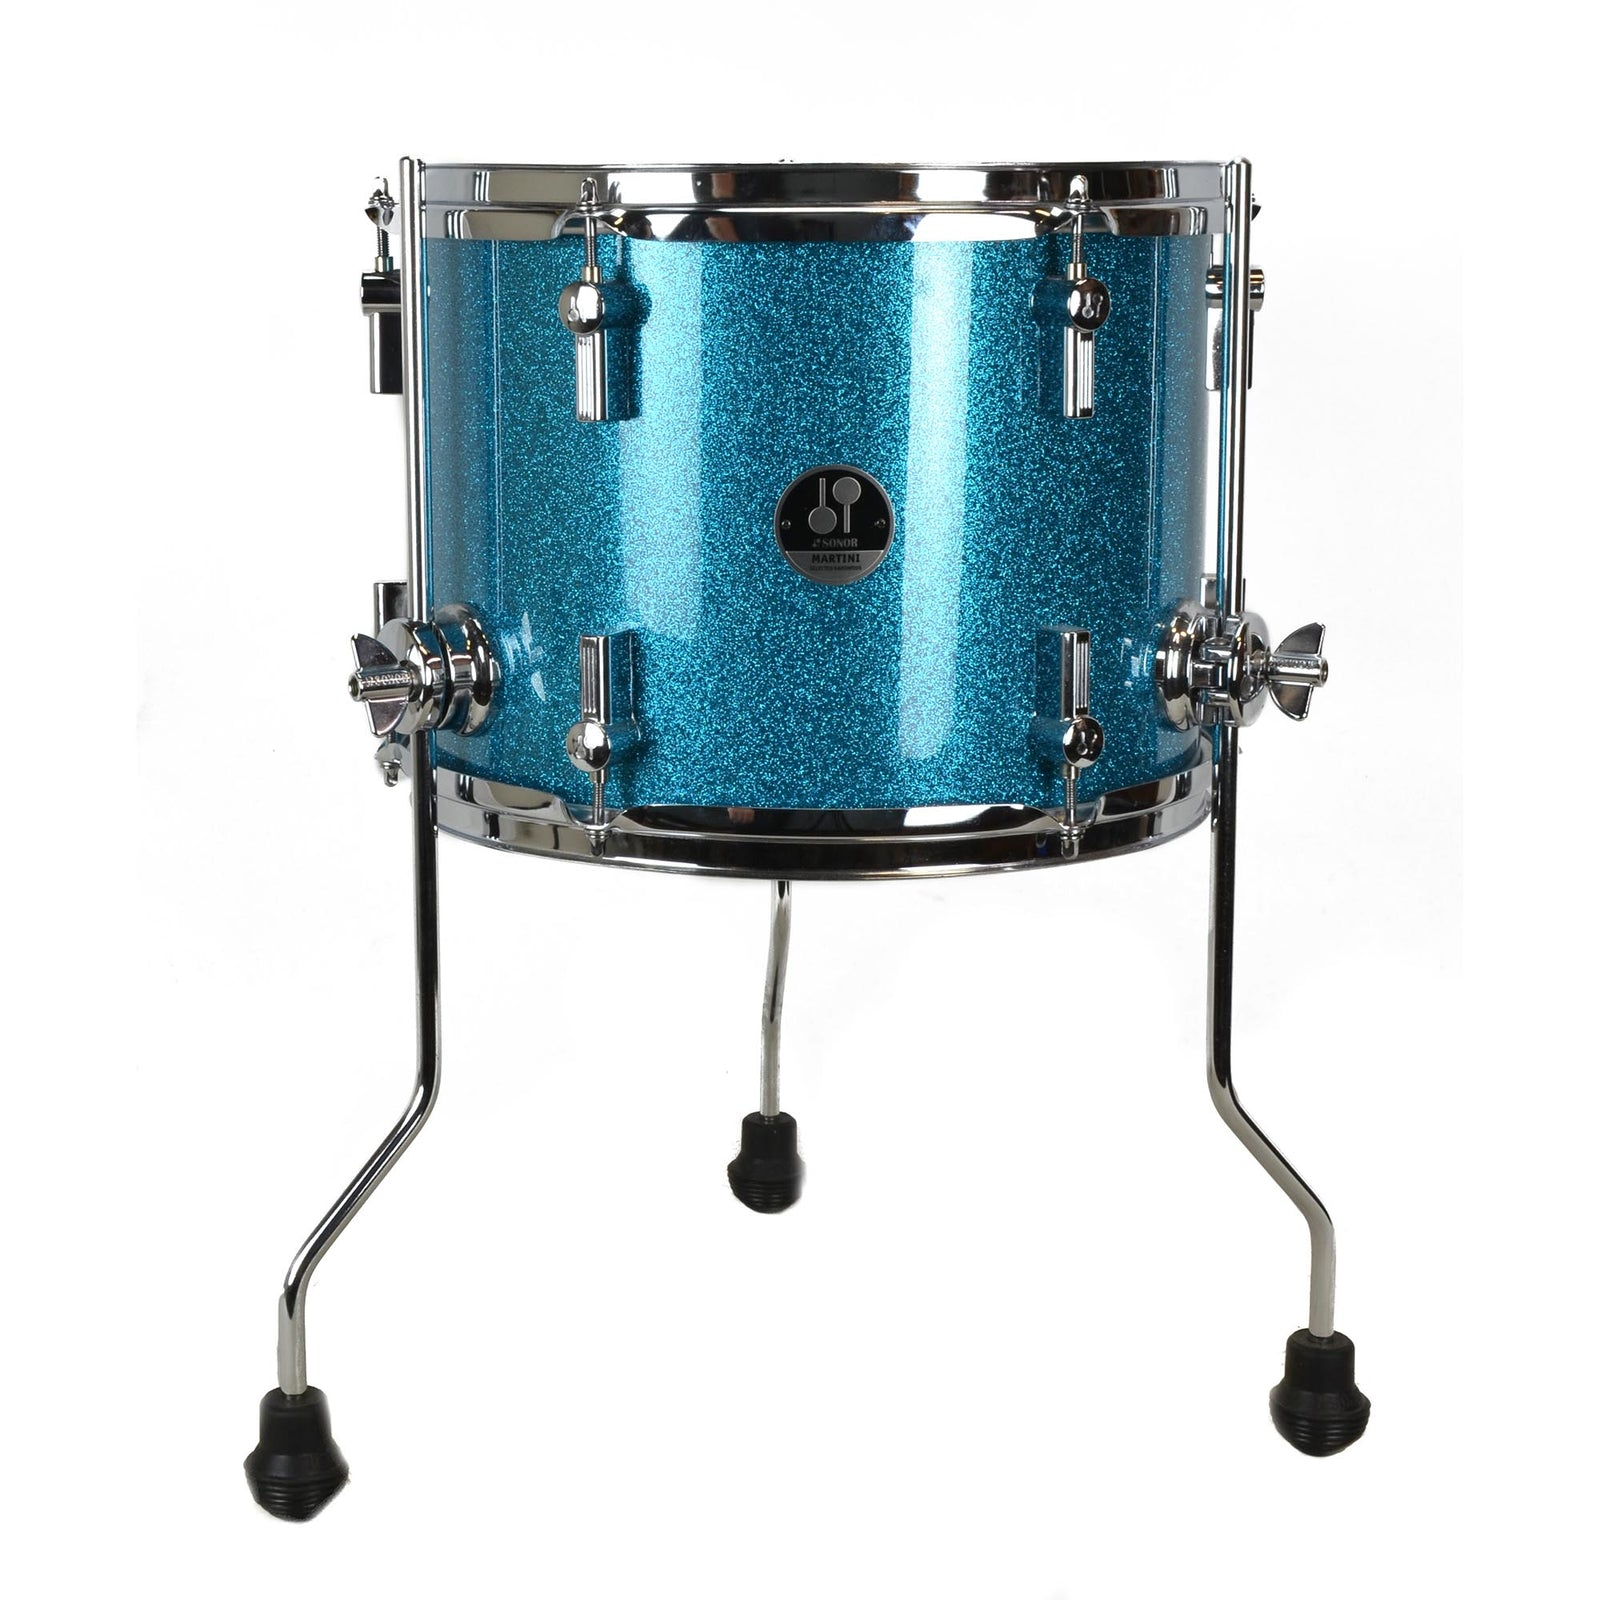 Sonor Martini Kit - Retro Turquoise Galaxy Sparkle With Silent Stroke - Used